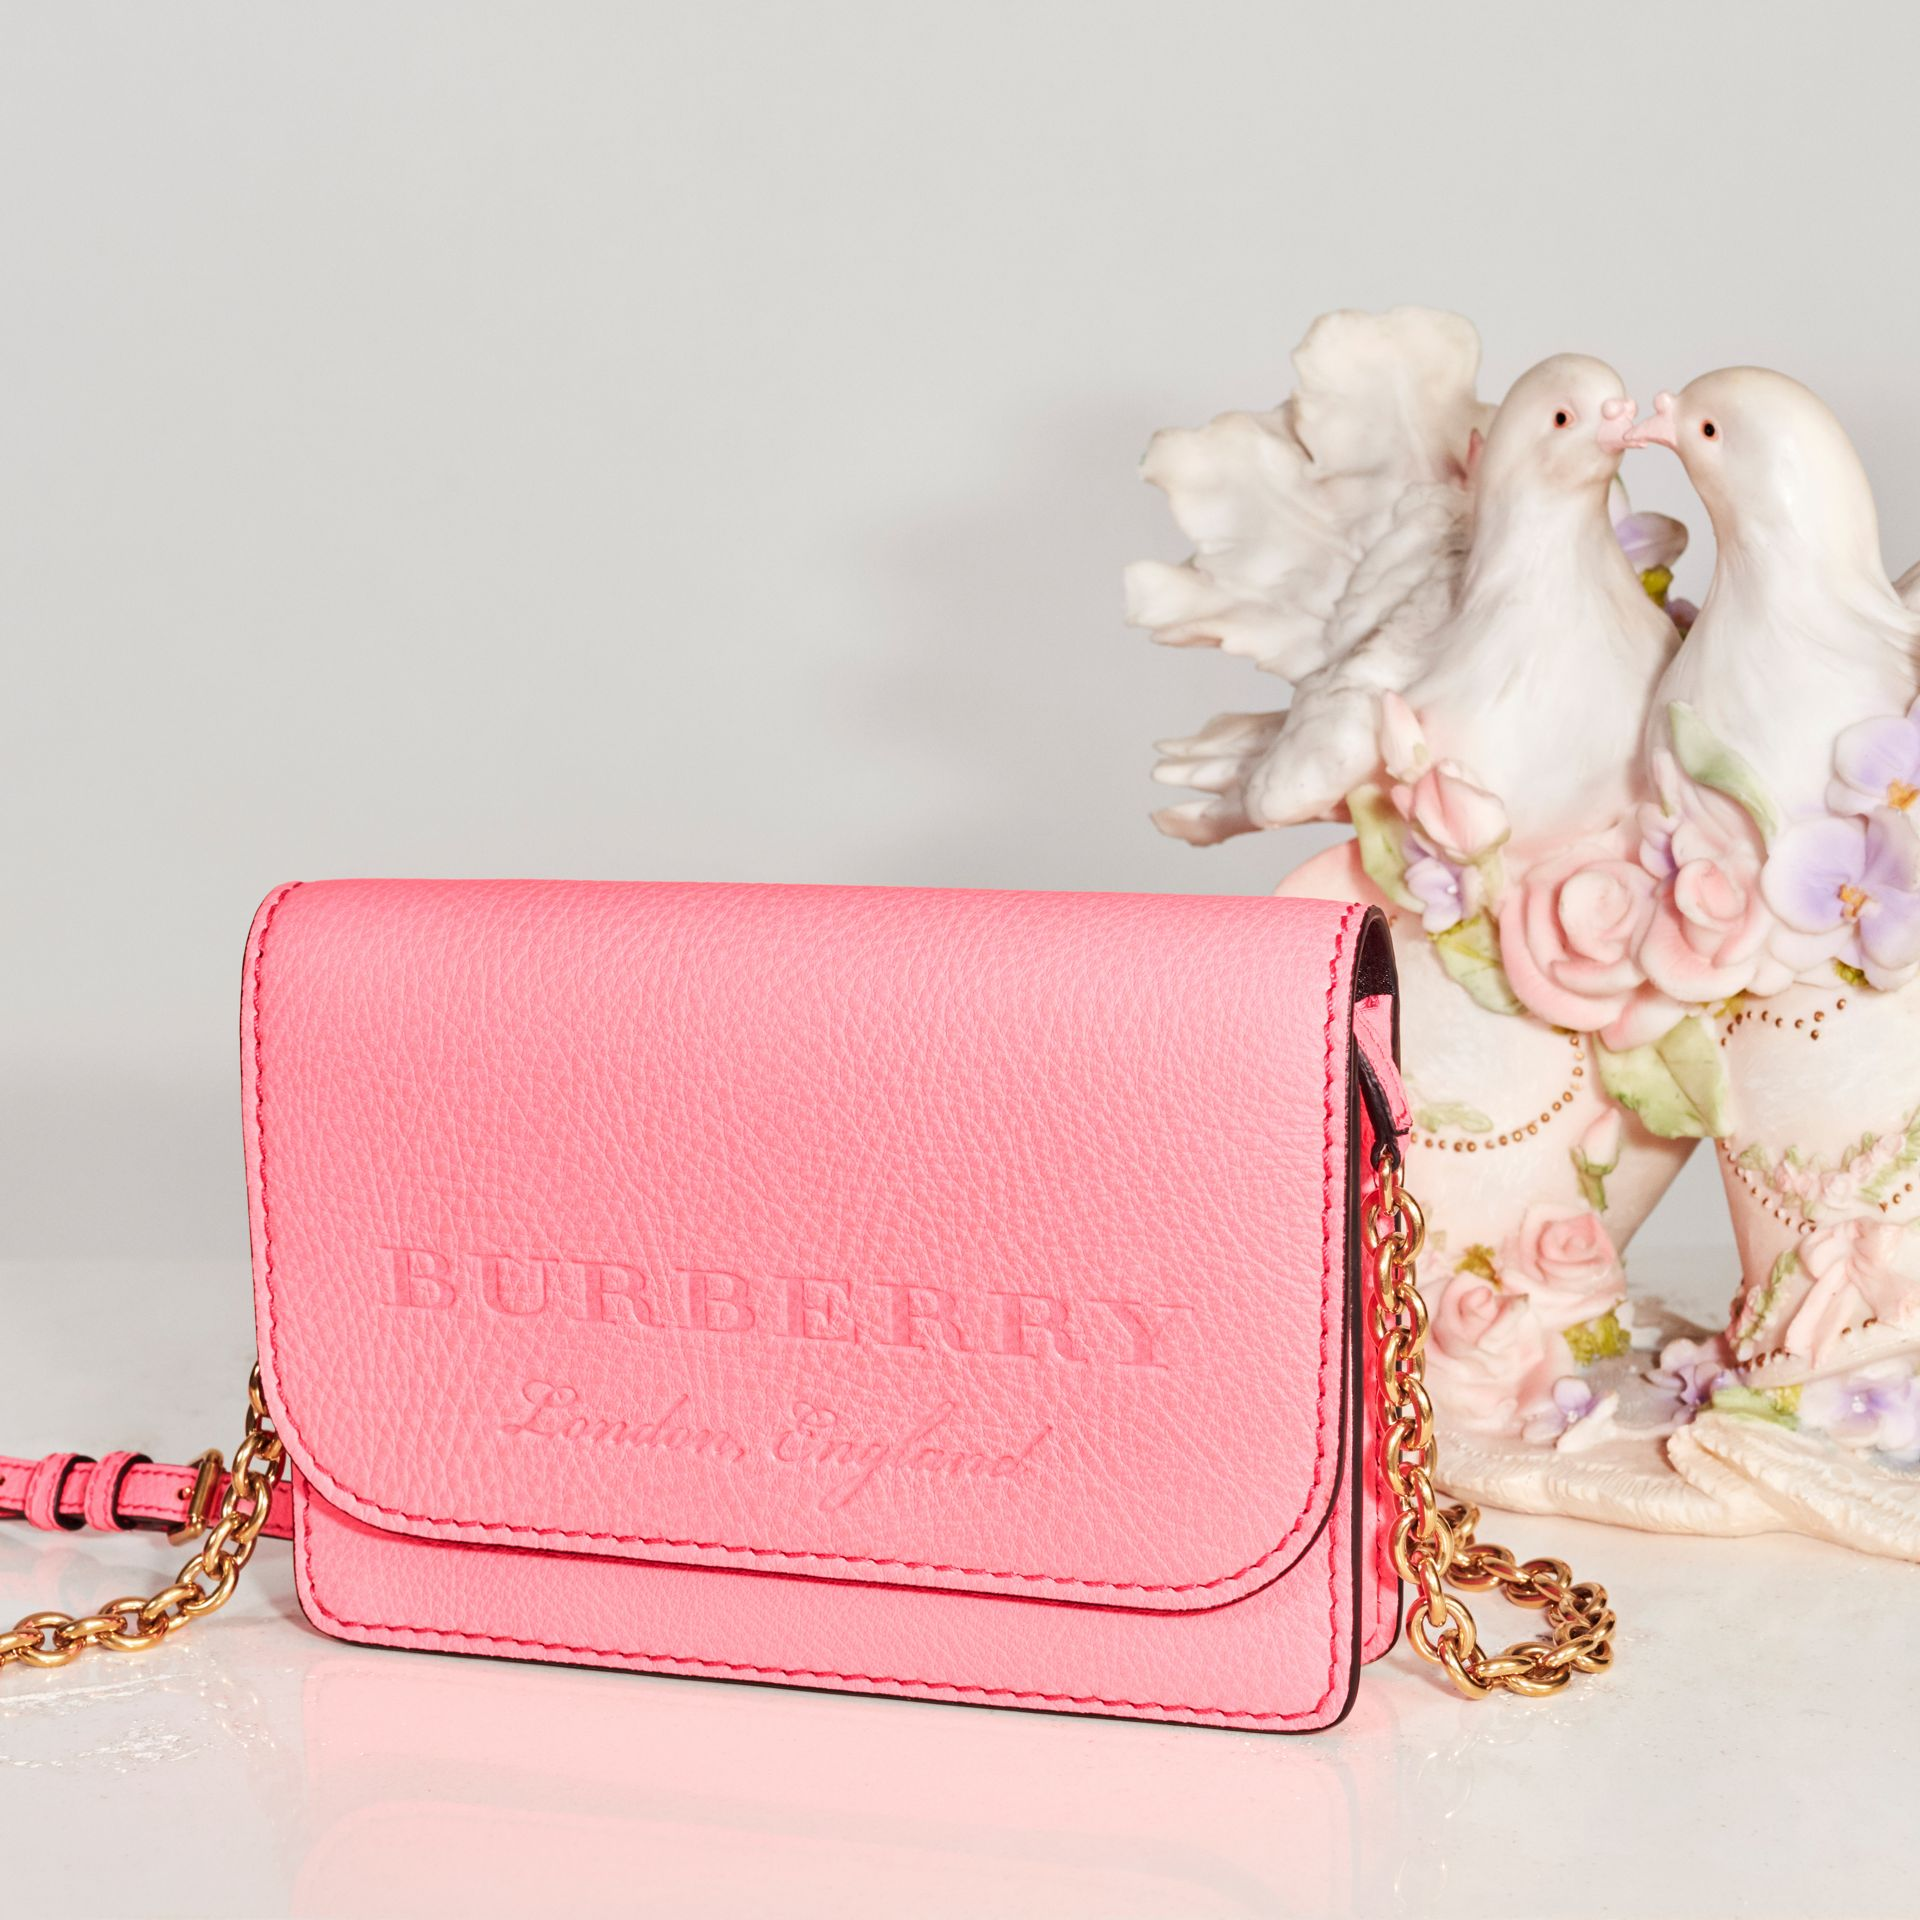 Embossed Leather Wallet with Detachable Strap in Bright Pink - Women | Burberry United Kingdom - gallery image 7